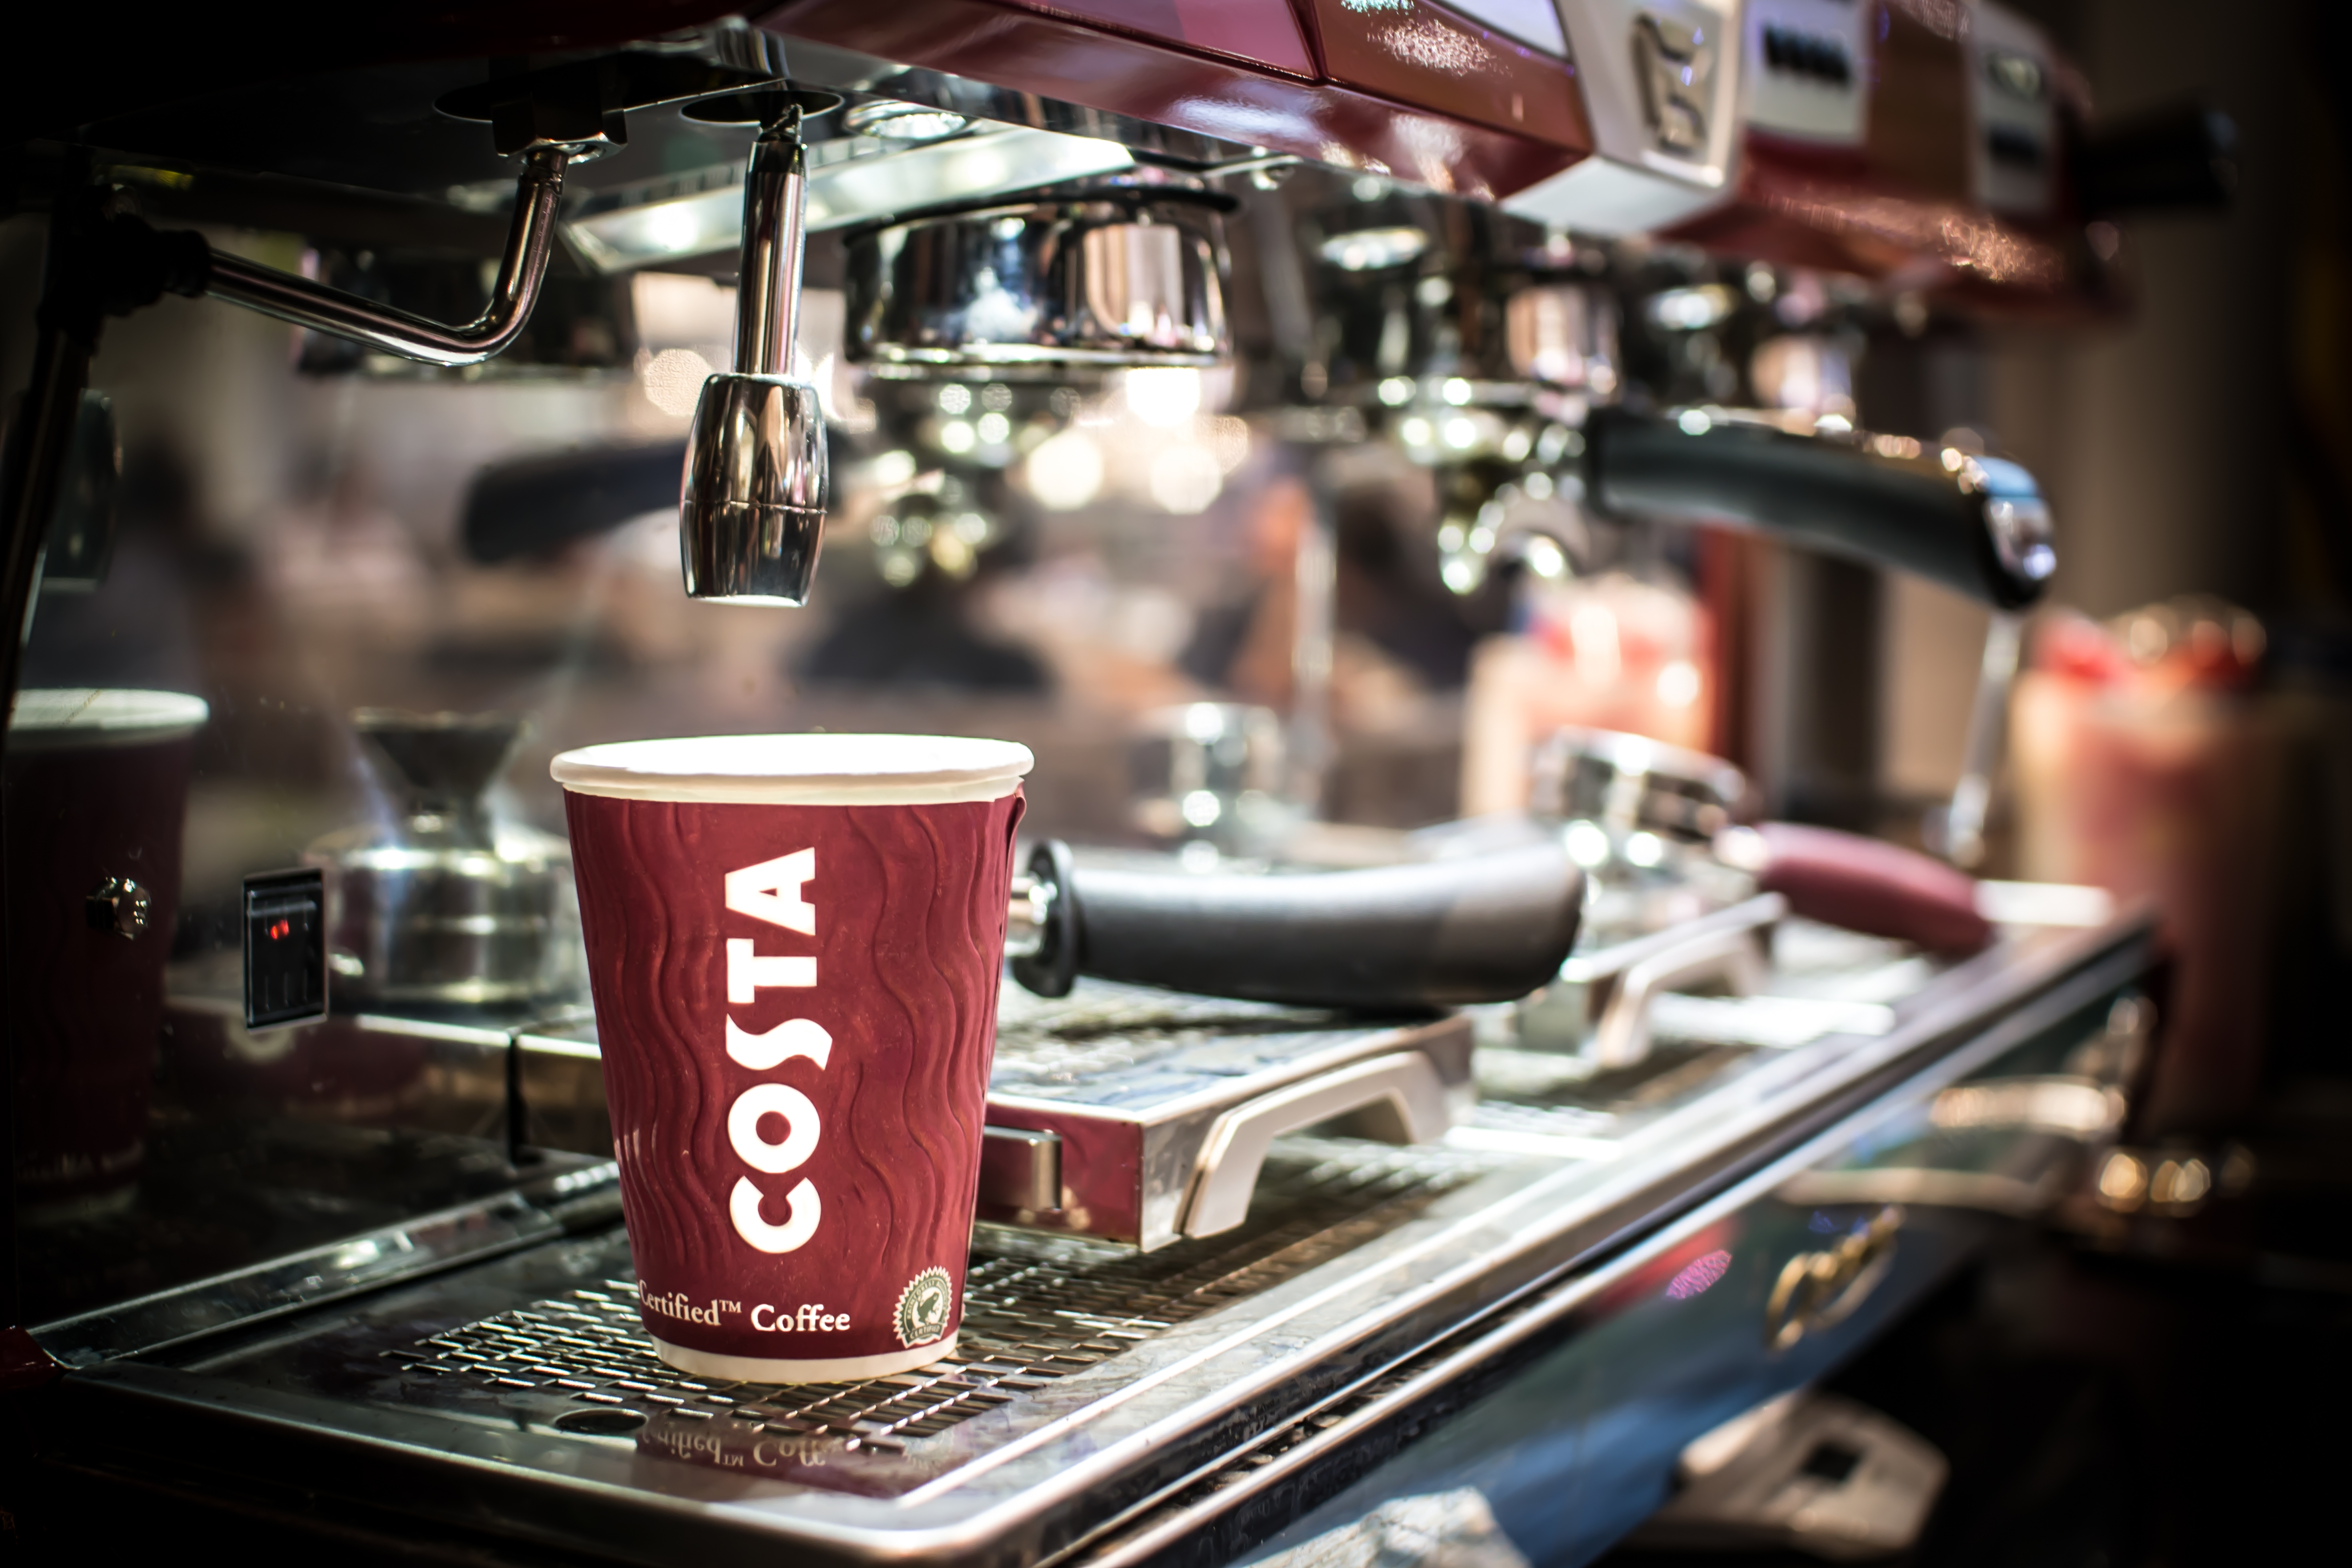 Cola-Costa takeover to cost £3.9bn